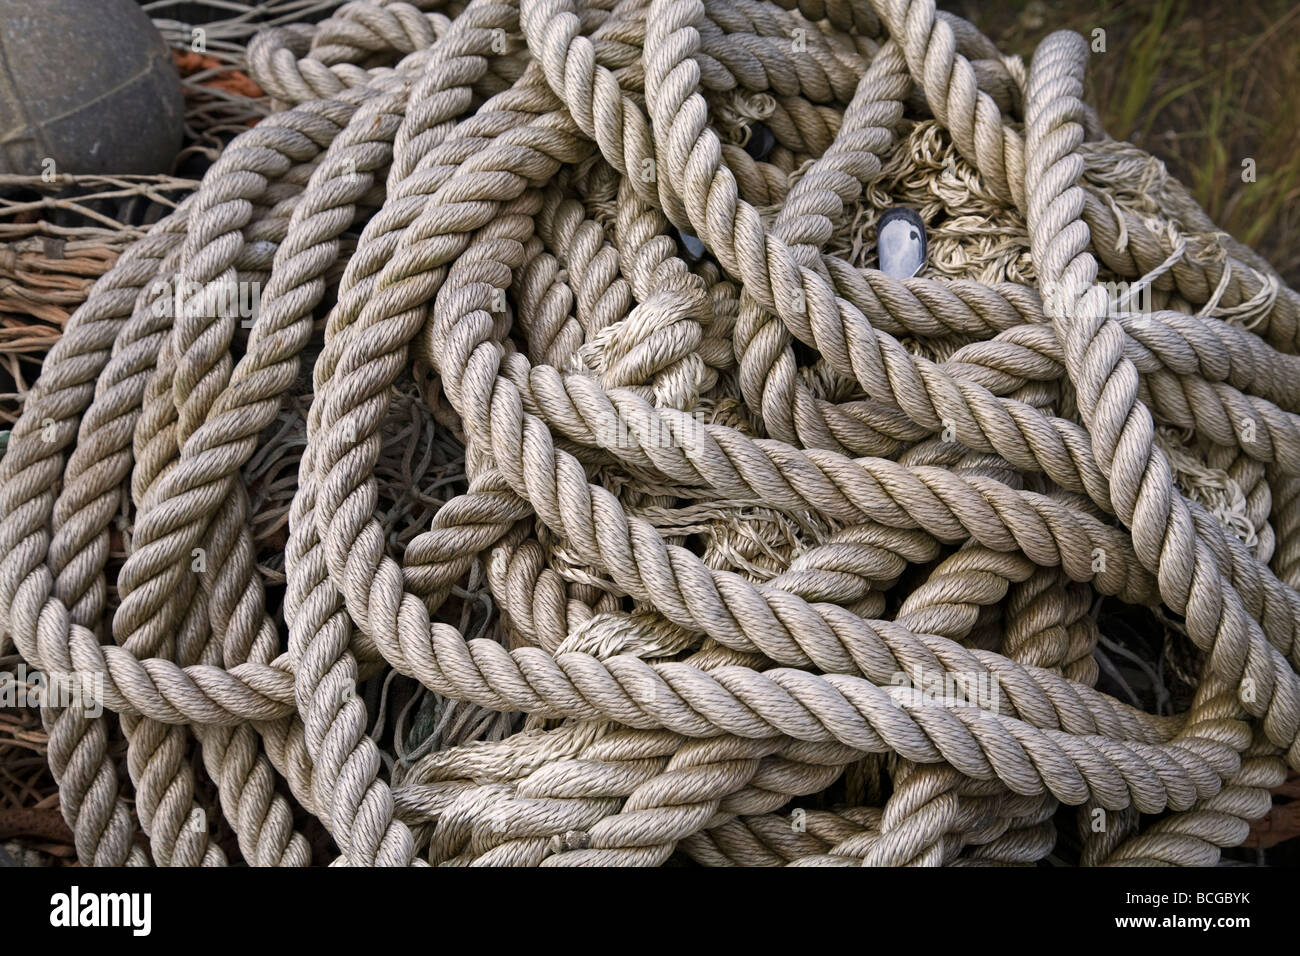 A pile of nylon rope or line used to tie ships to their mooring or dock. - Stock Image